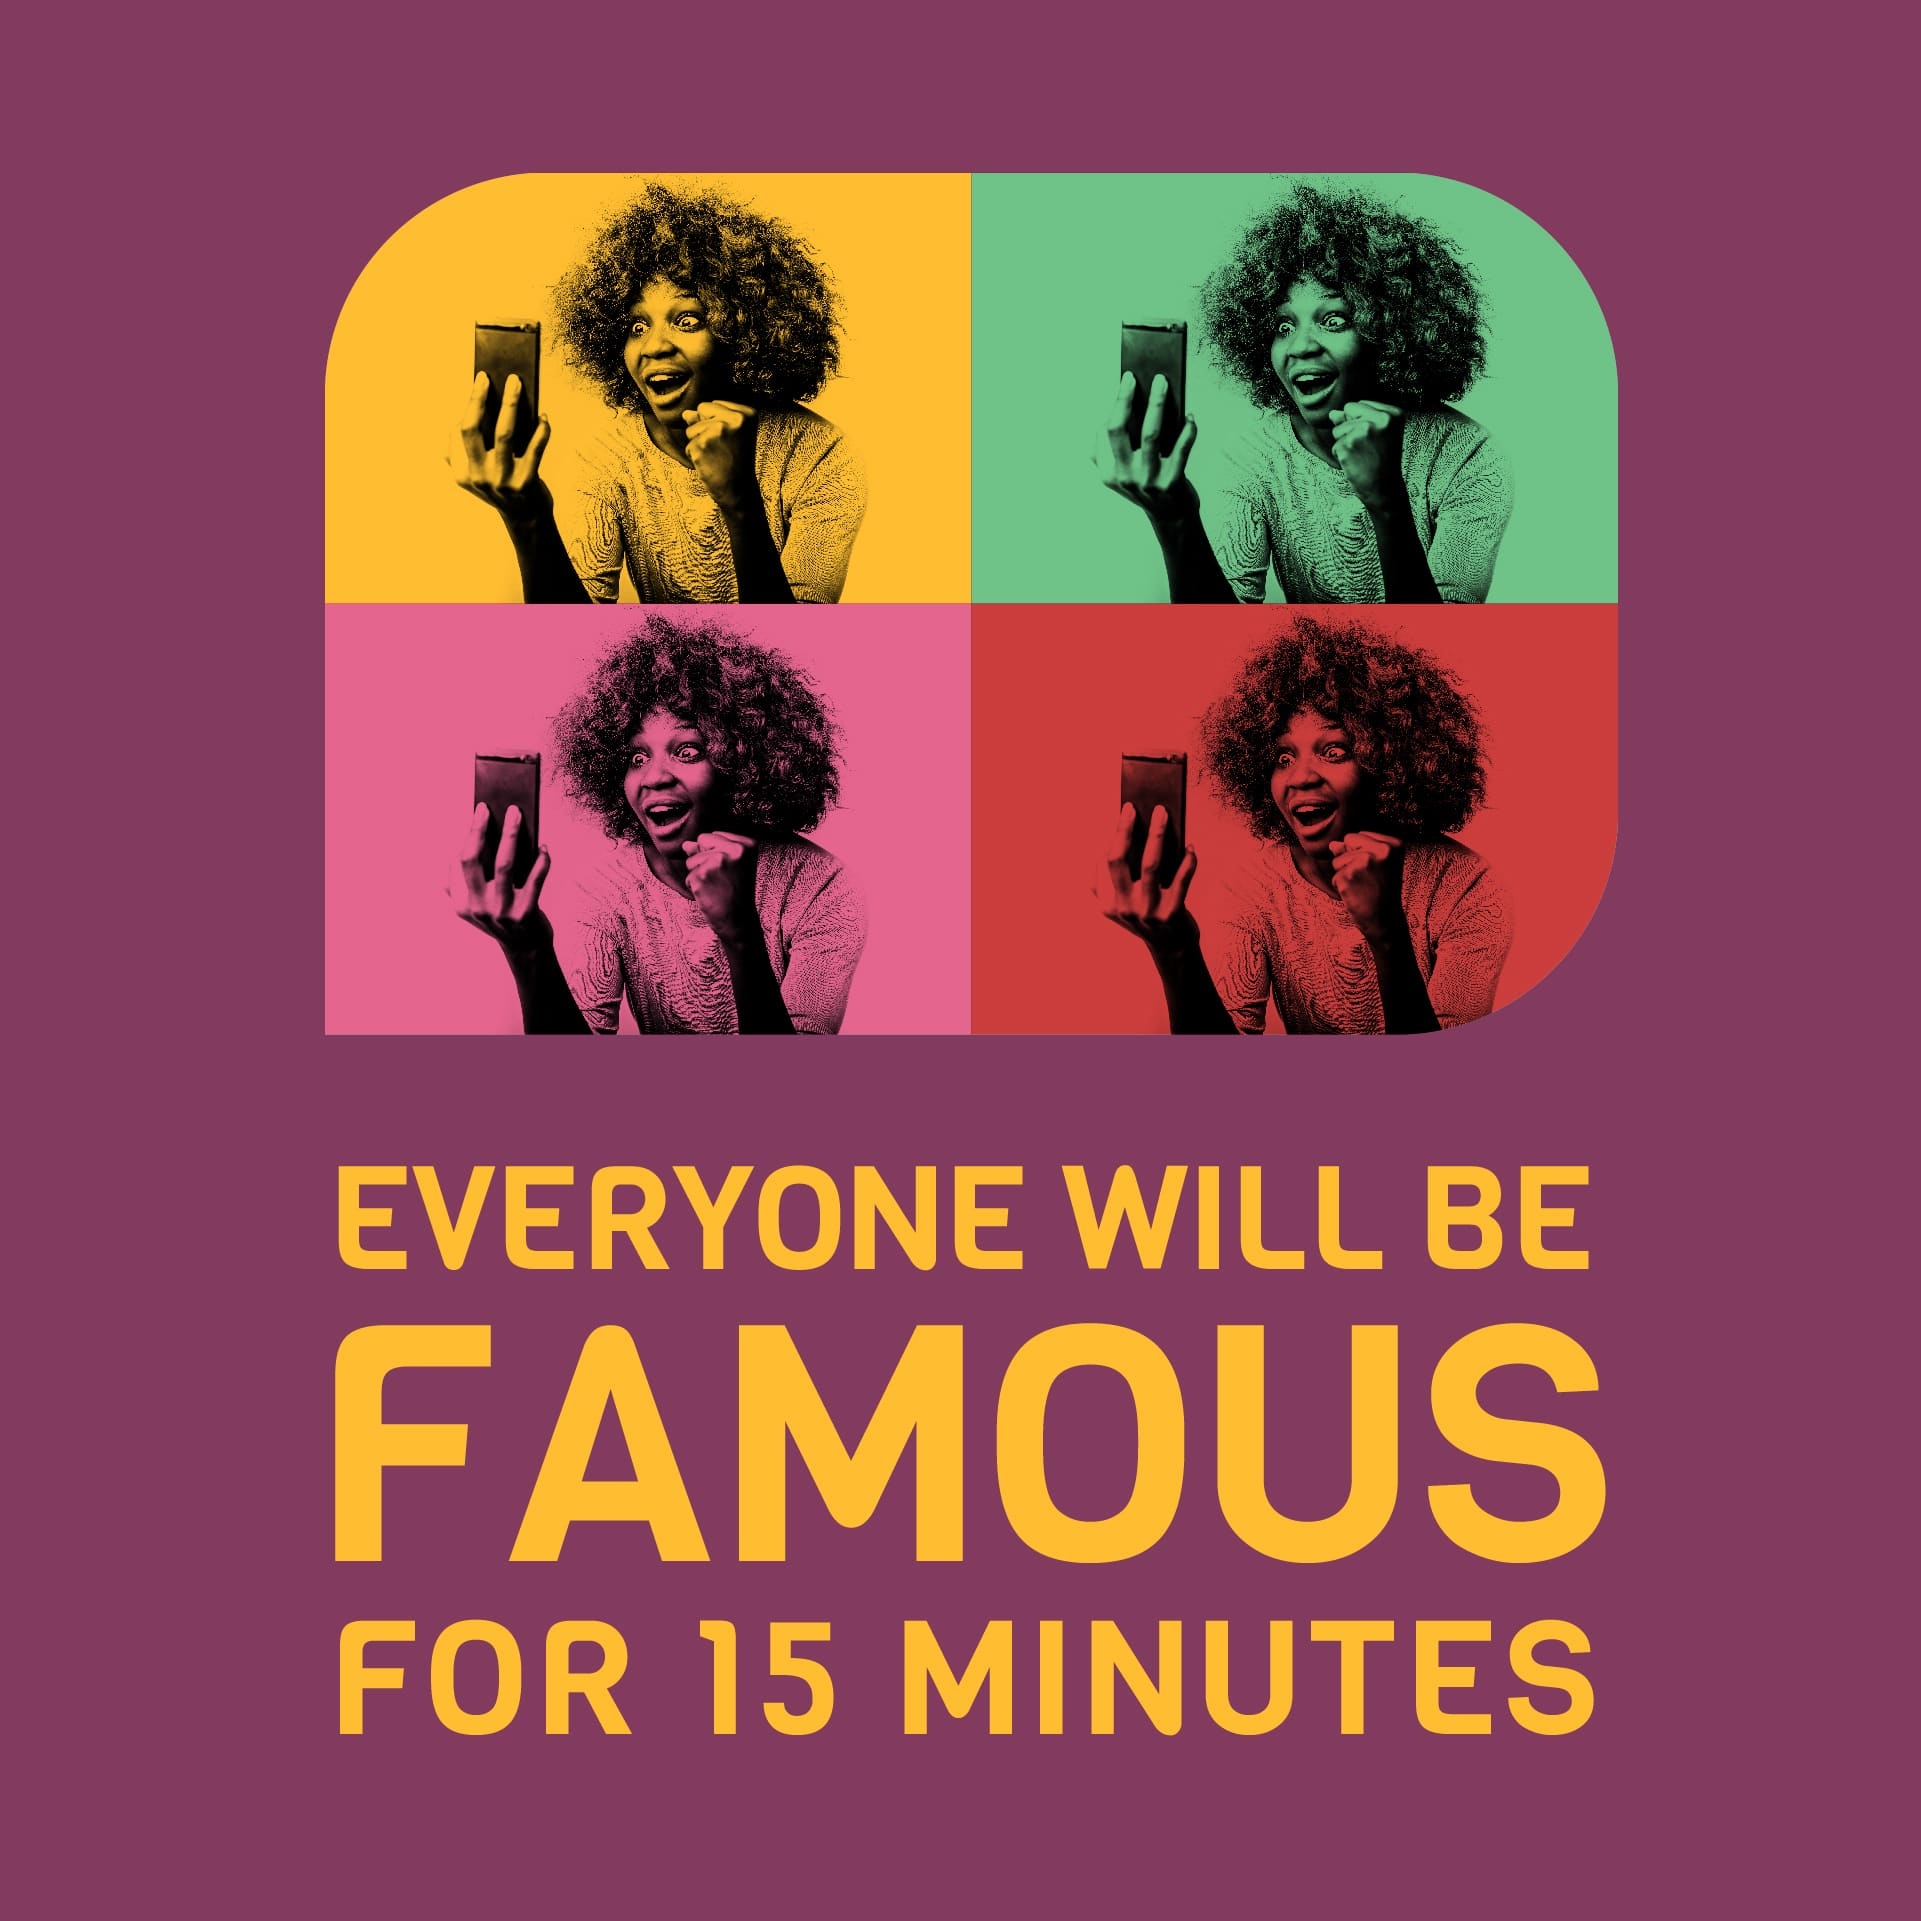 Everyone will be famous for 15 minutes